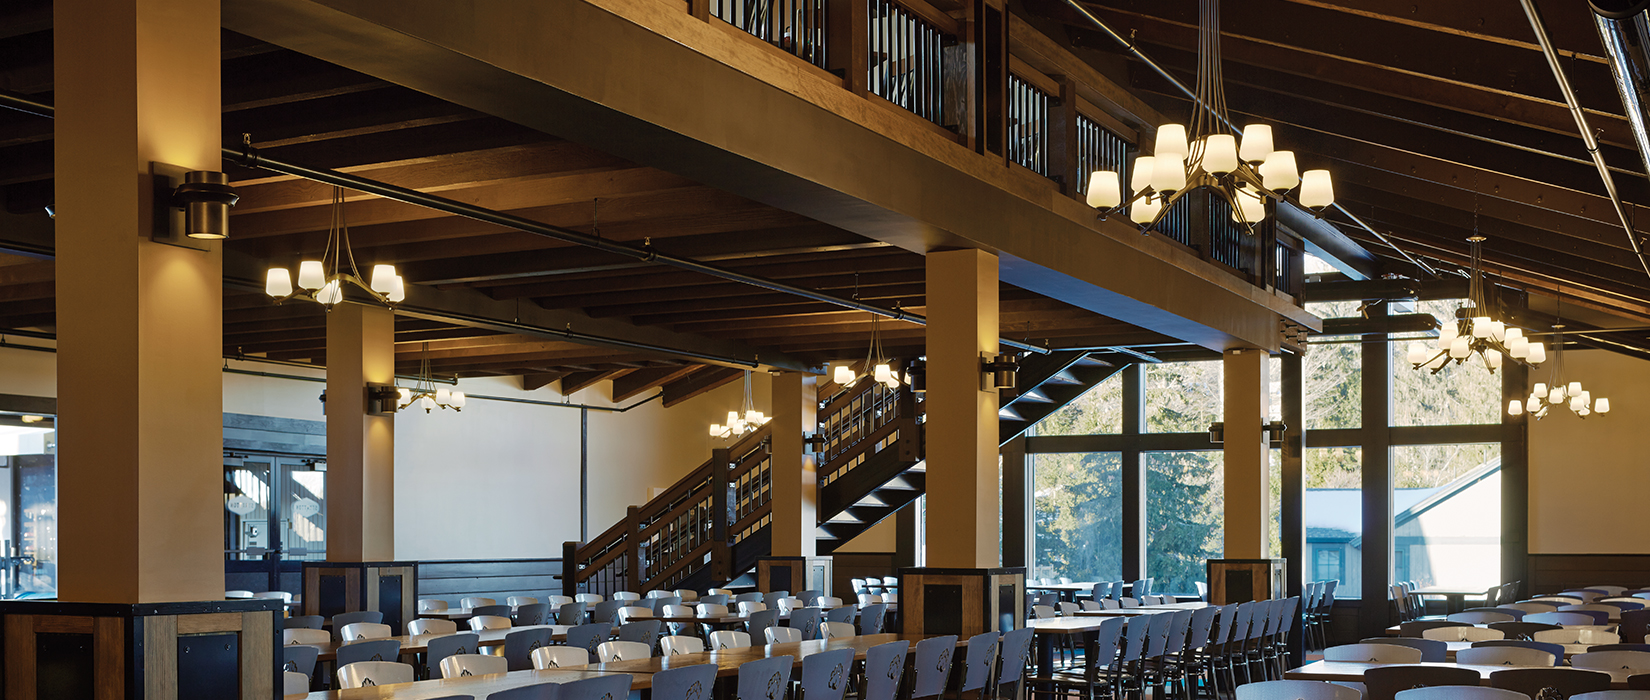 Stratton Mountain Resort Base Lodge with Hubbardton Forge Chandeliers